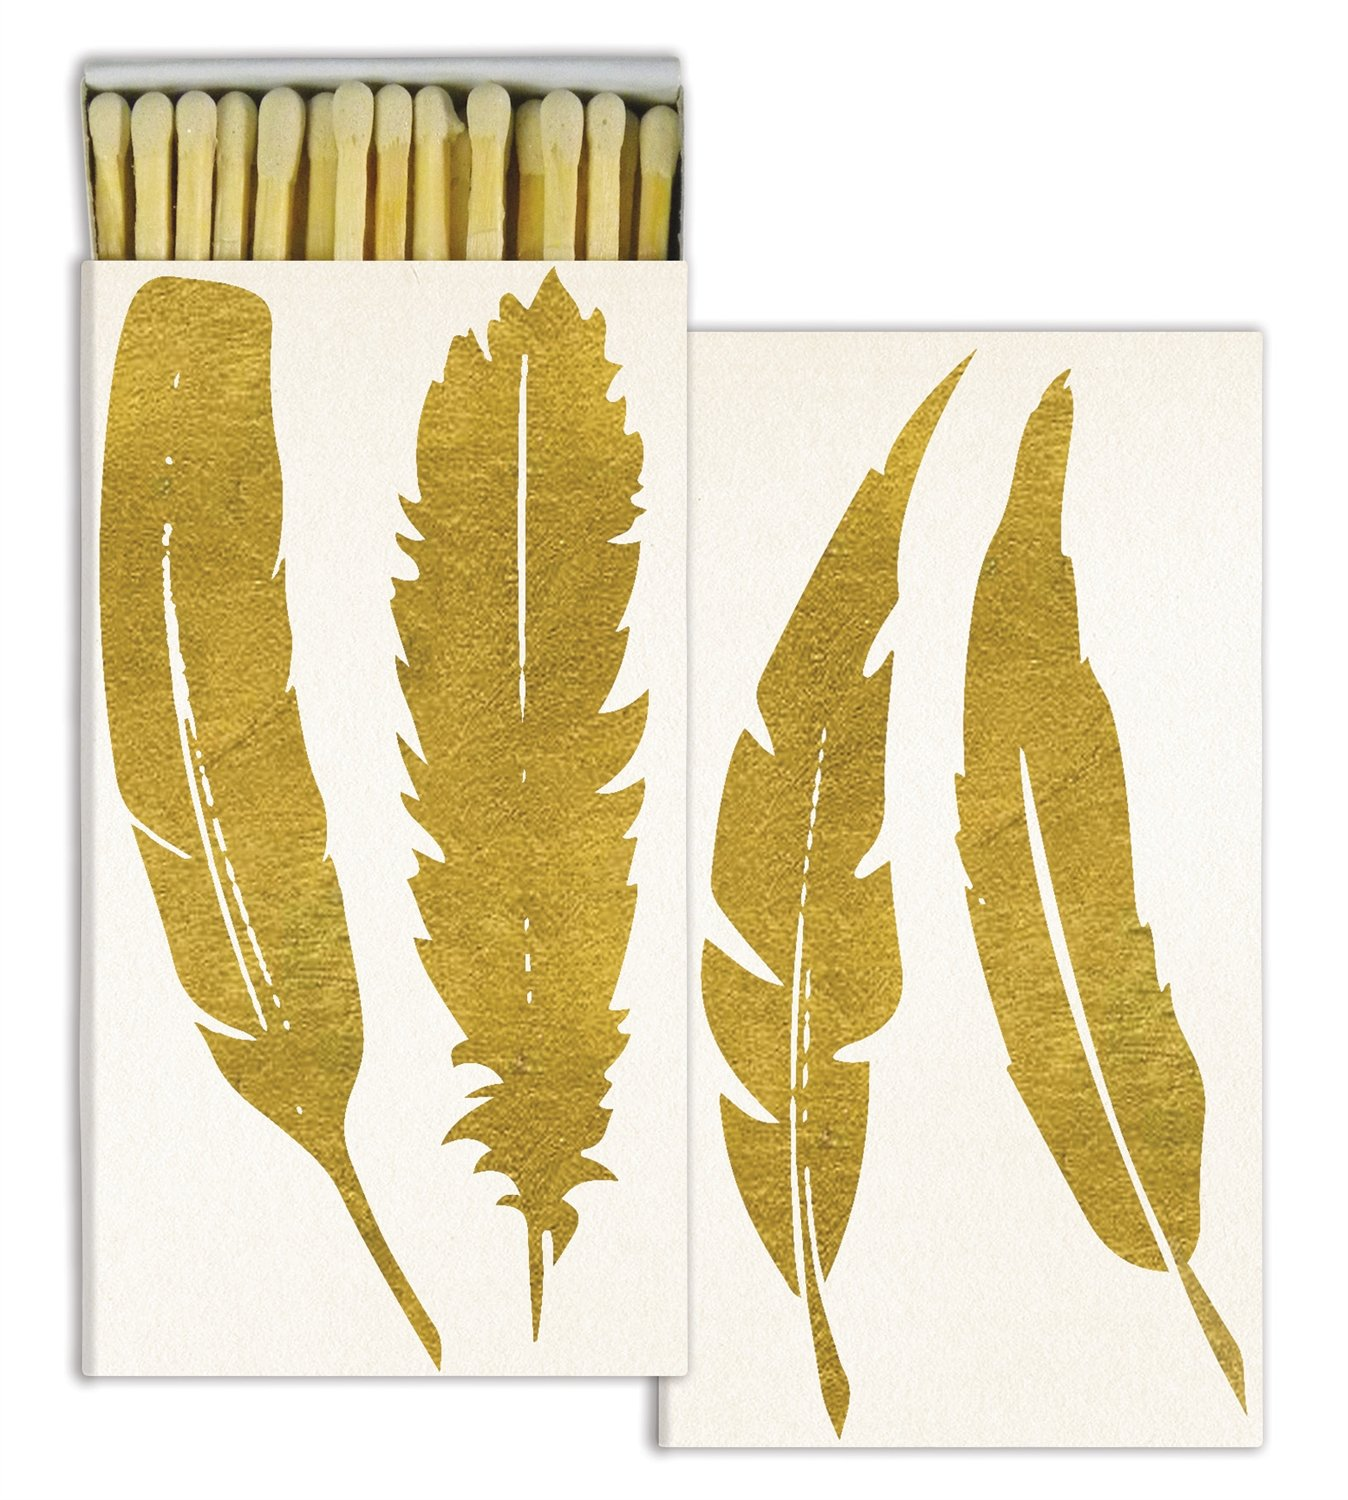 Feathers Gold Foil Decorative Match Boxes with Wooden Matches (Set of 10)